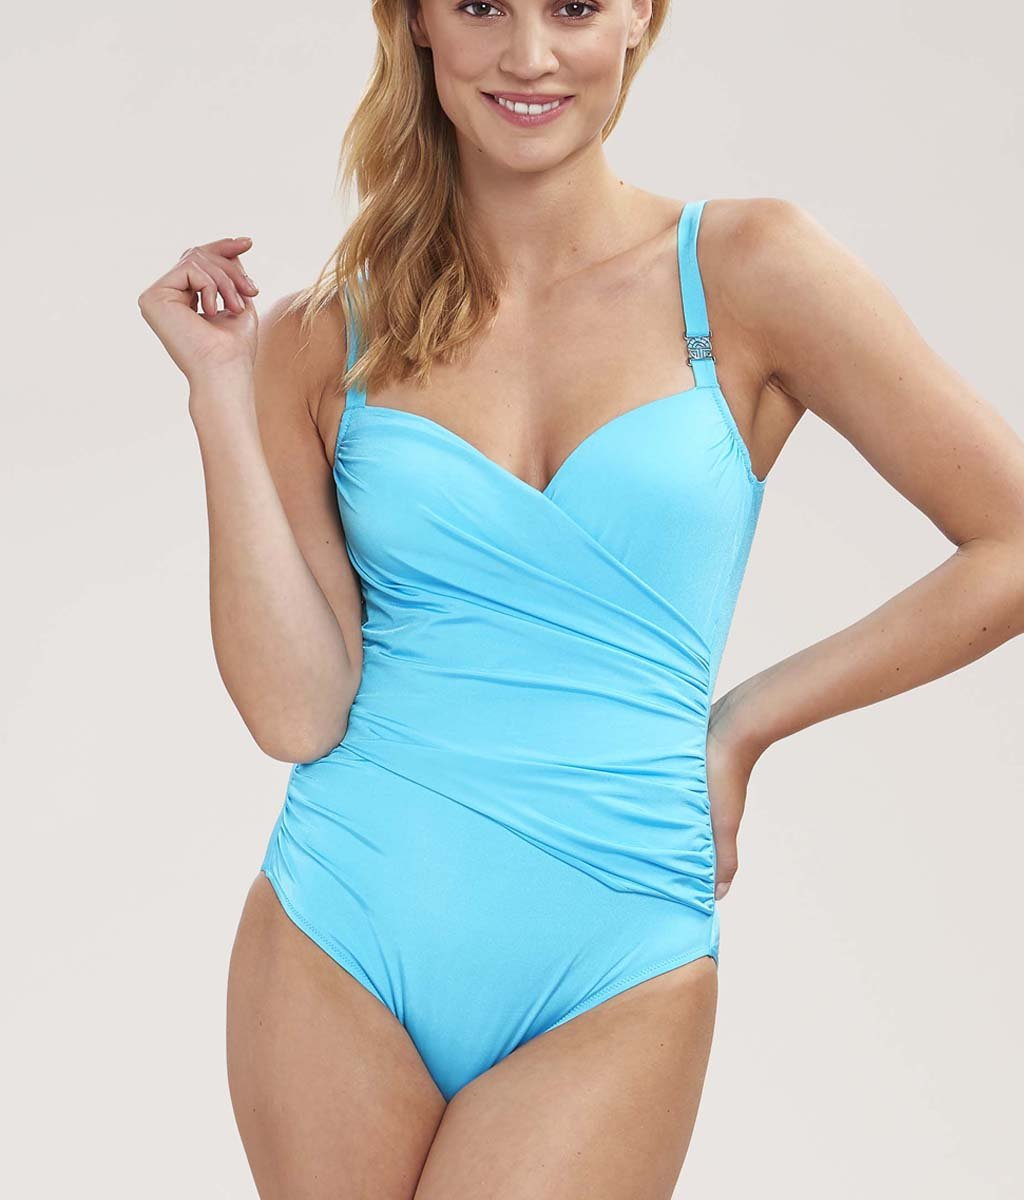 Louis Féraud 'Beach' (Turquoise) Padded Swimsuit - Sandra Dee - Model Shot - Front